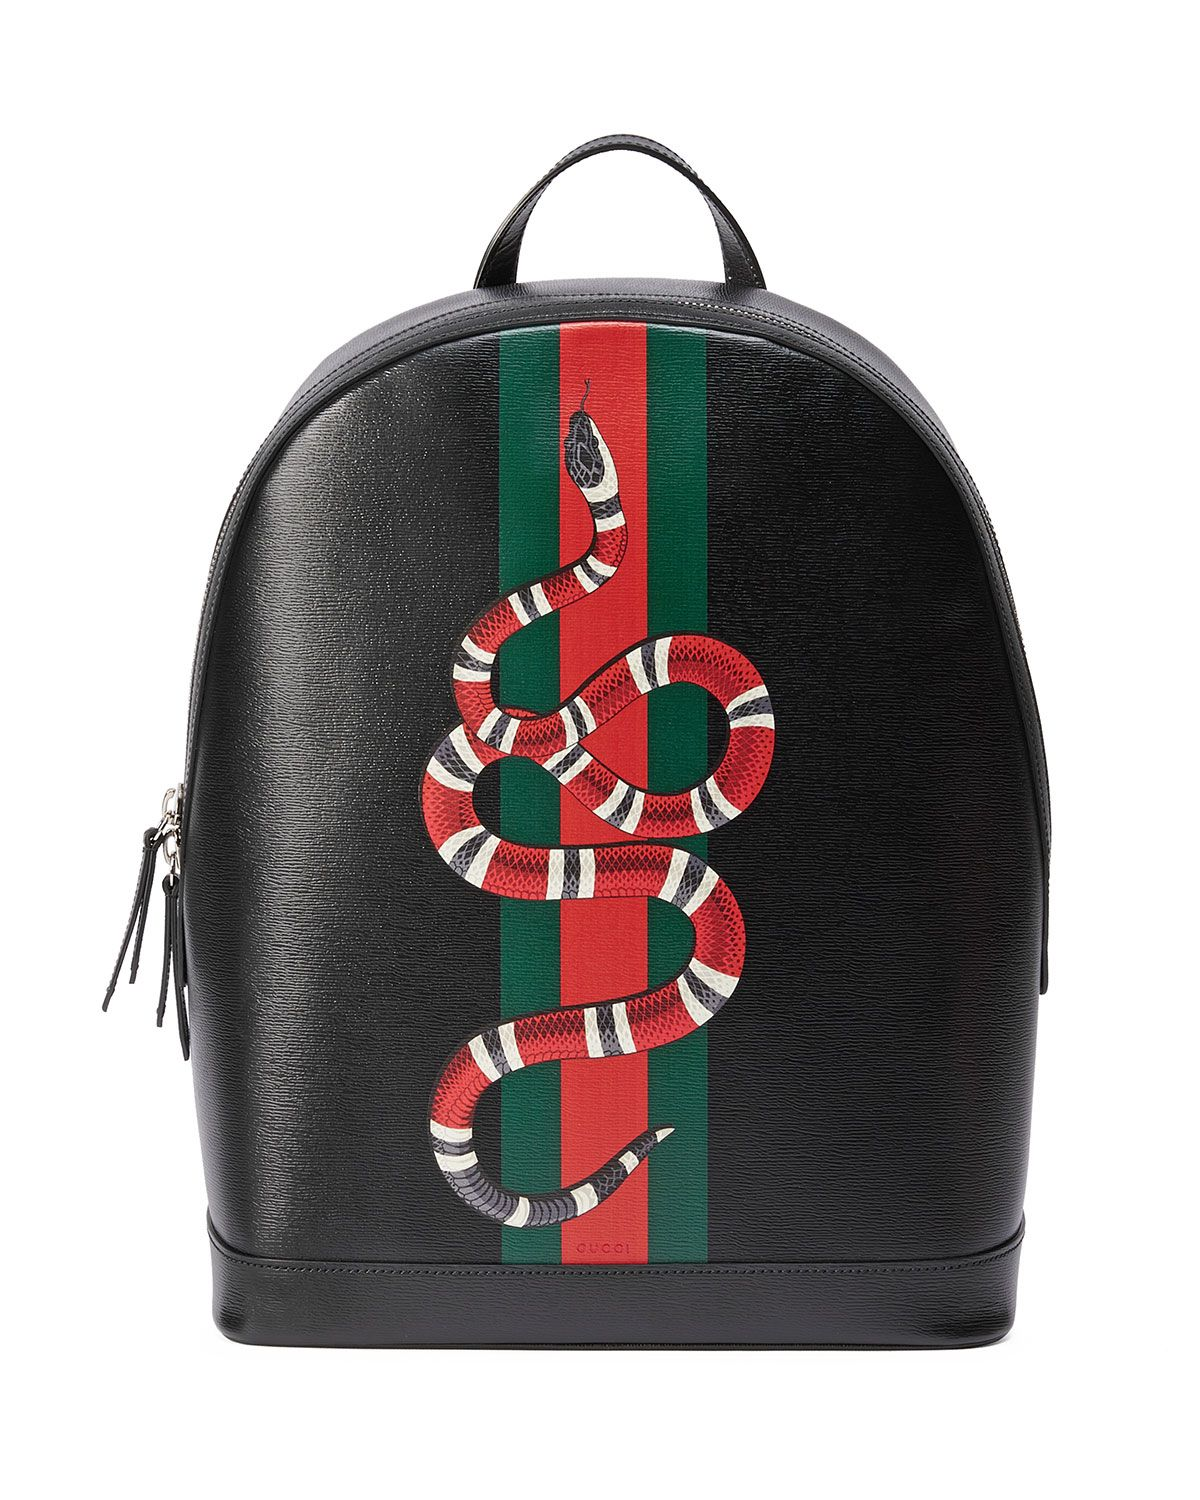 Gucci Web   Snake Leather Backpack c51aa2290a85b